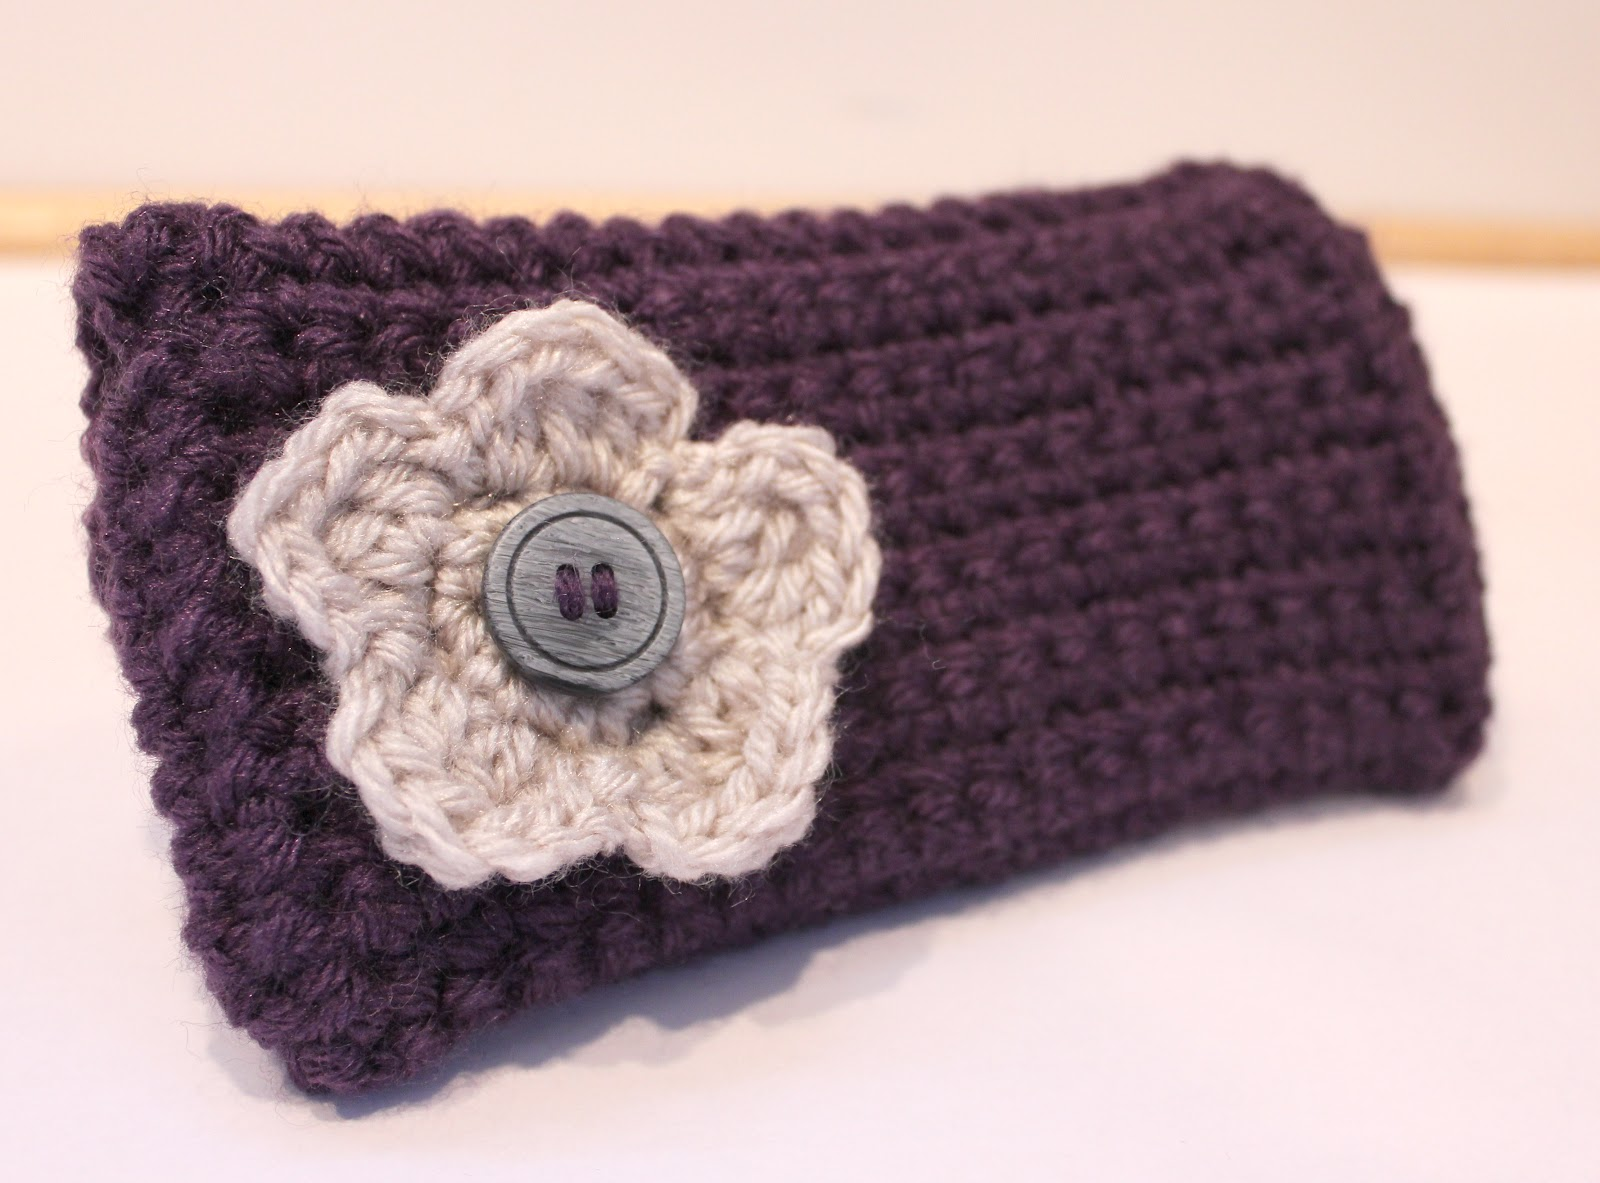 Clutch Bag Crochet : ... tissues and much more a great accessory for your diaper bag or purse